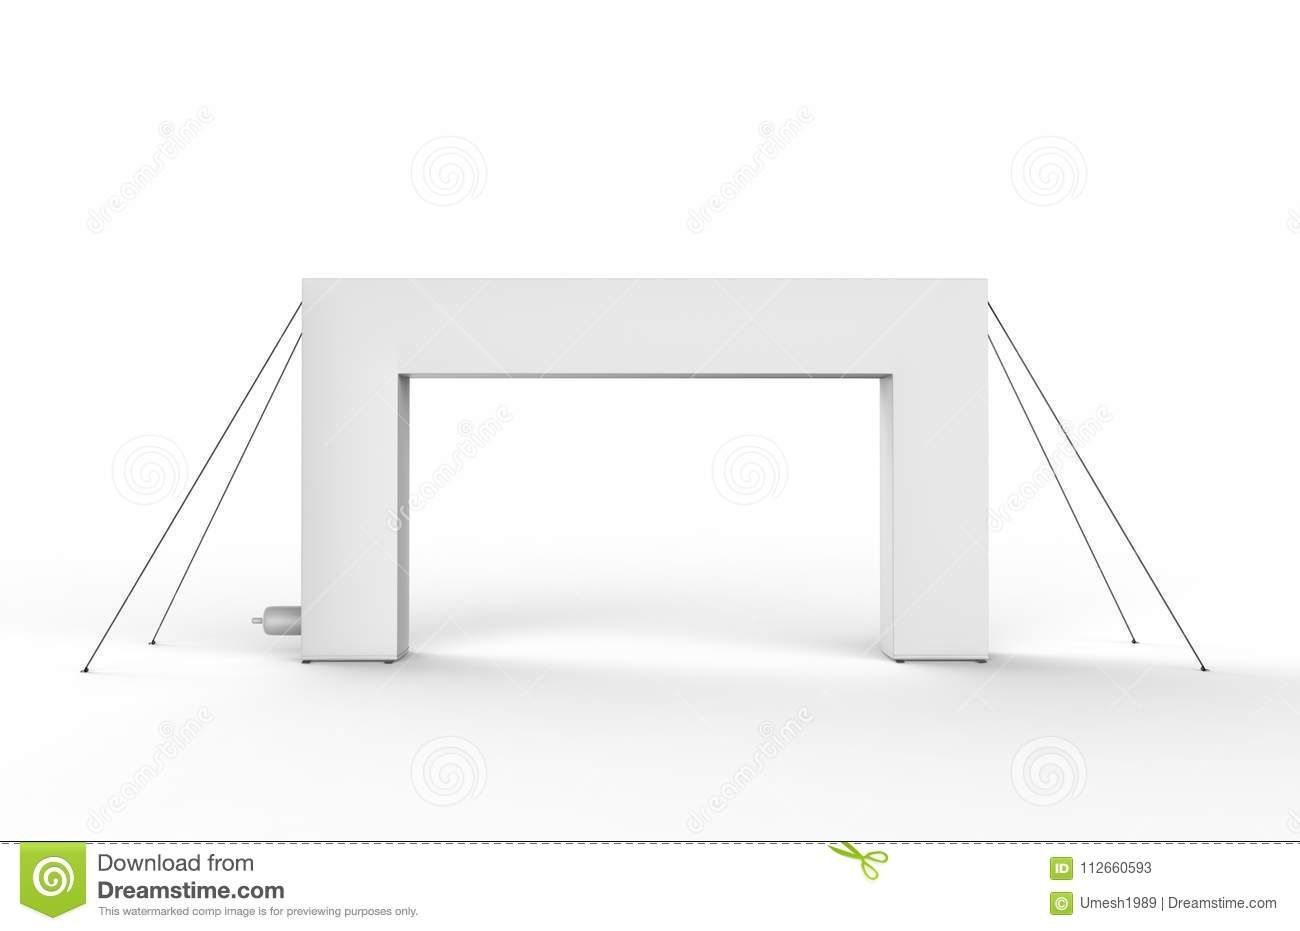 Blank Inflatable Square Arch Tube Or Event Entrance Gate 3d Render